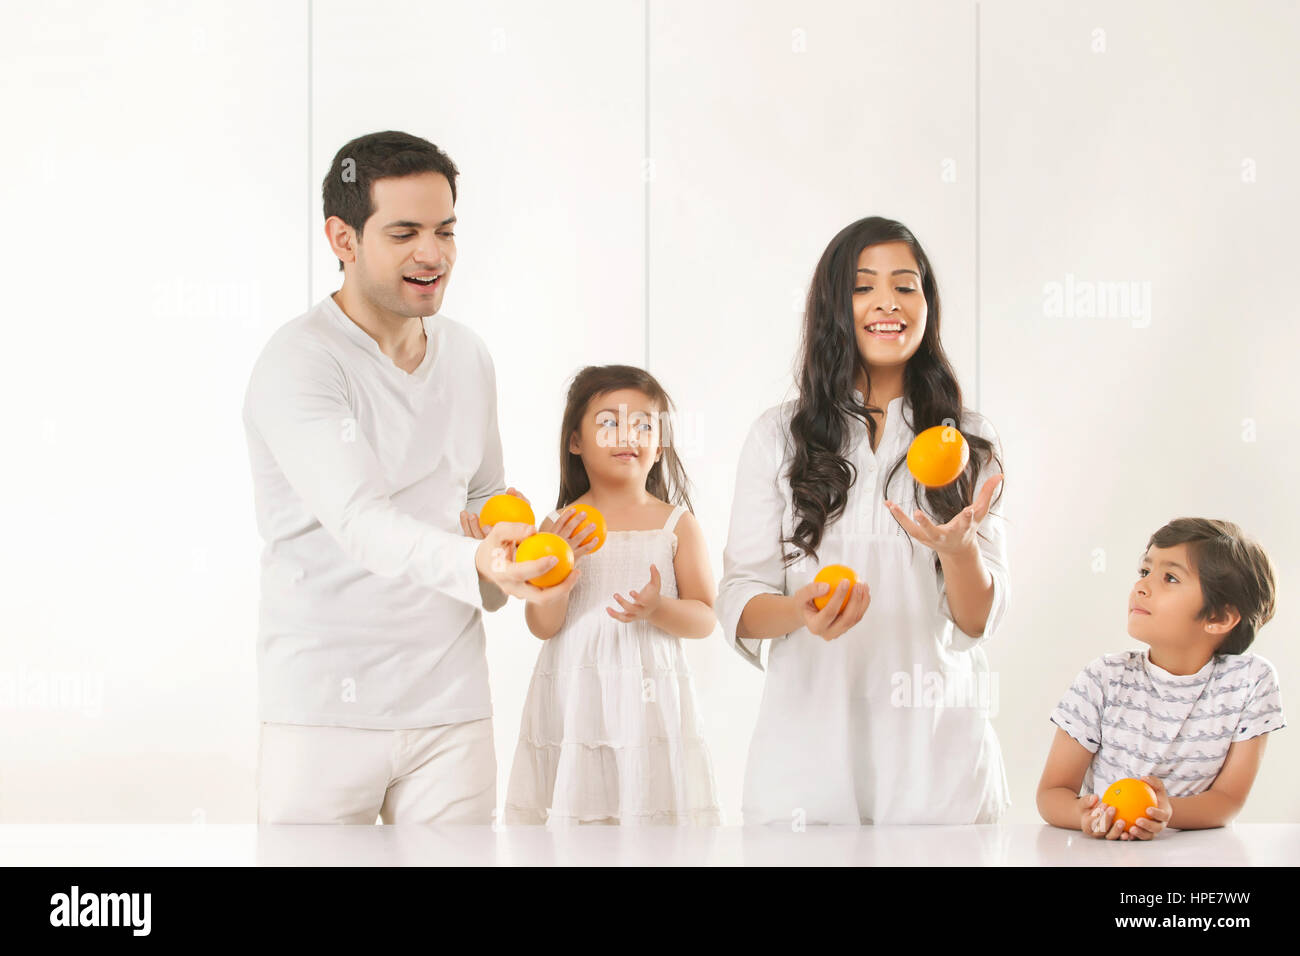 Family juggling with oranges - Stock Image